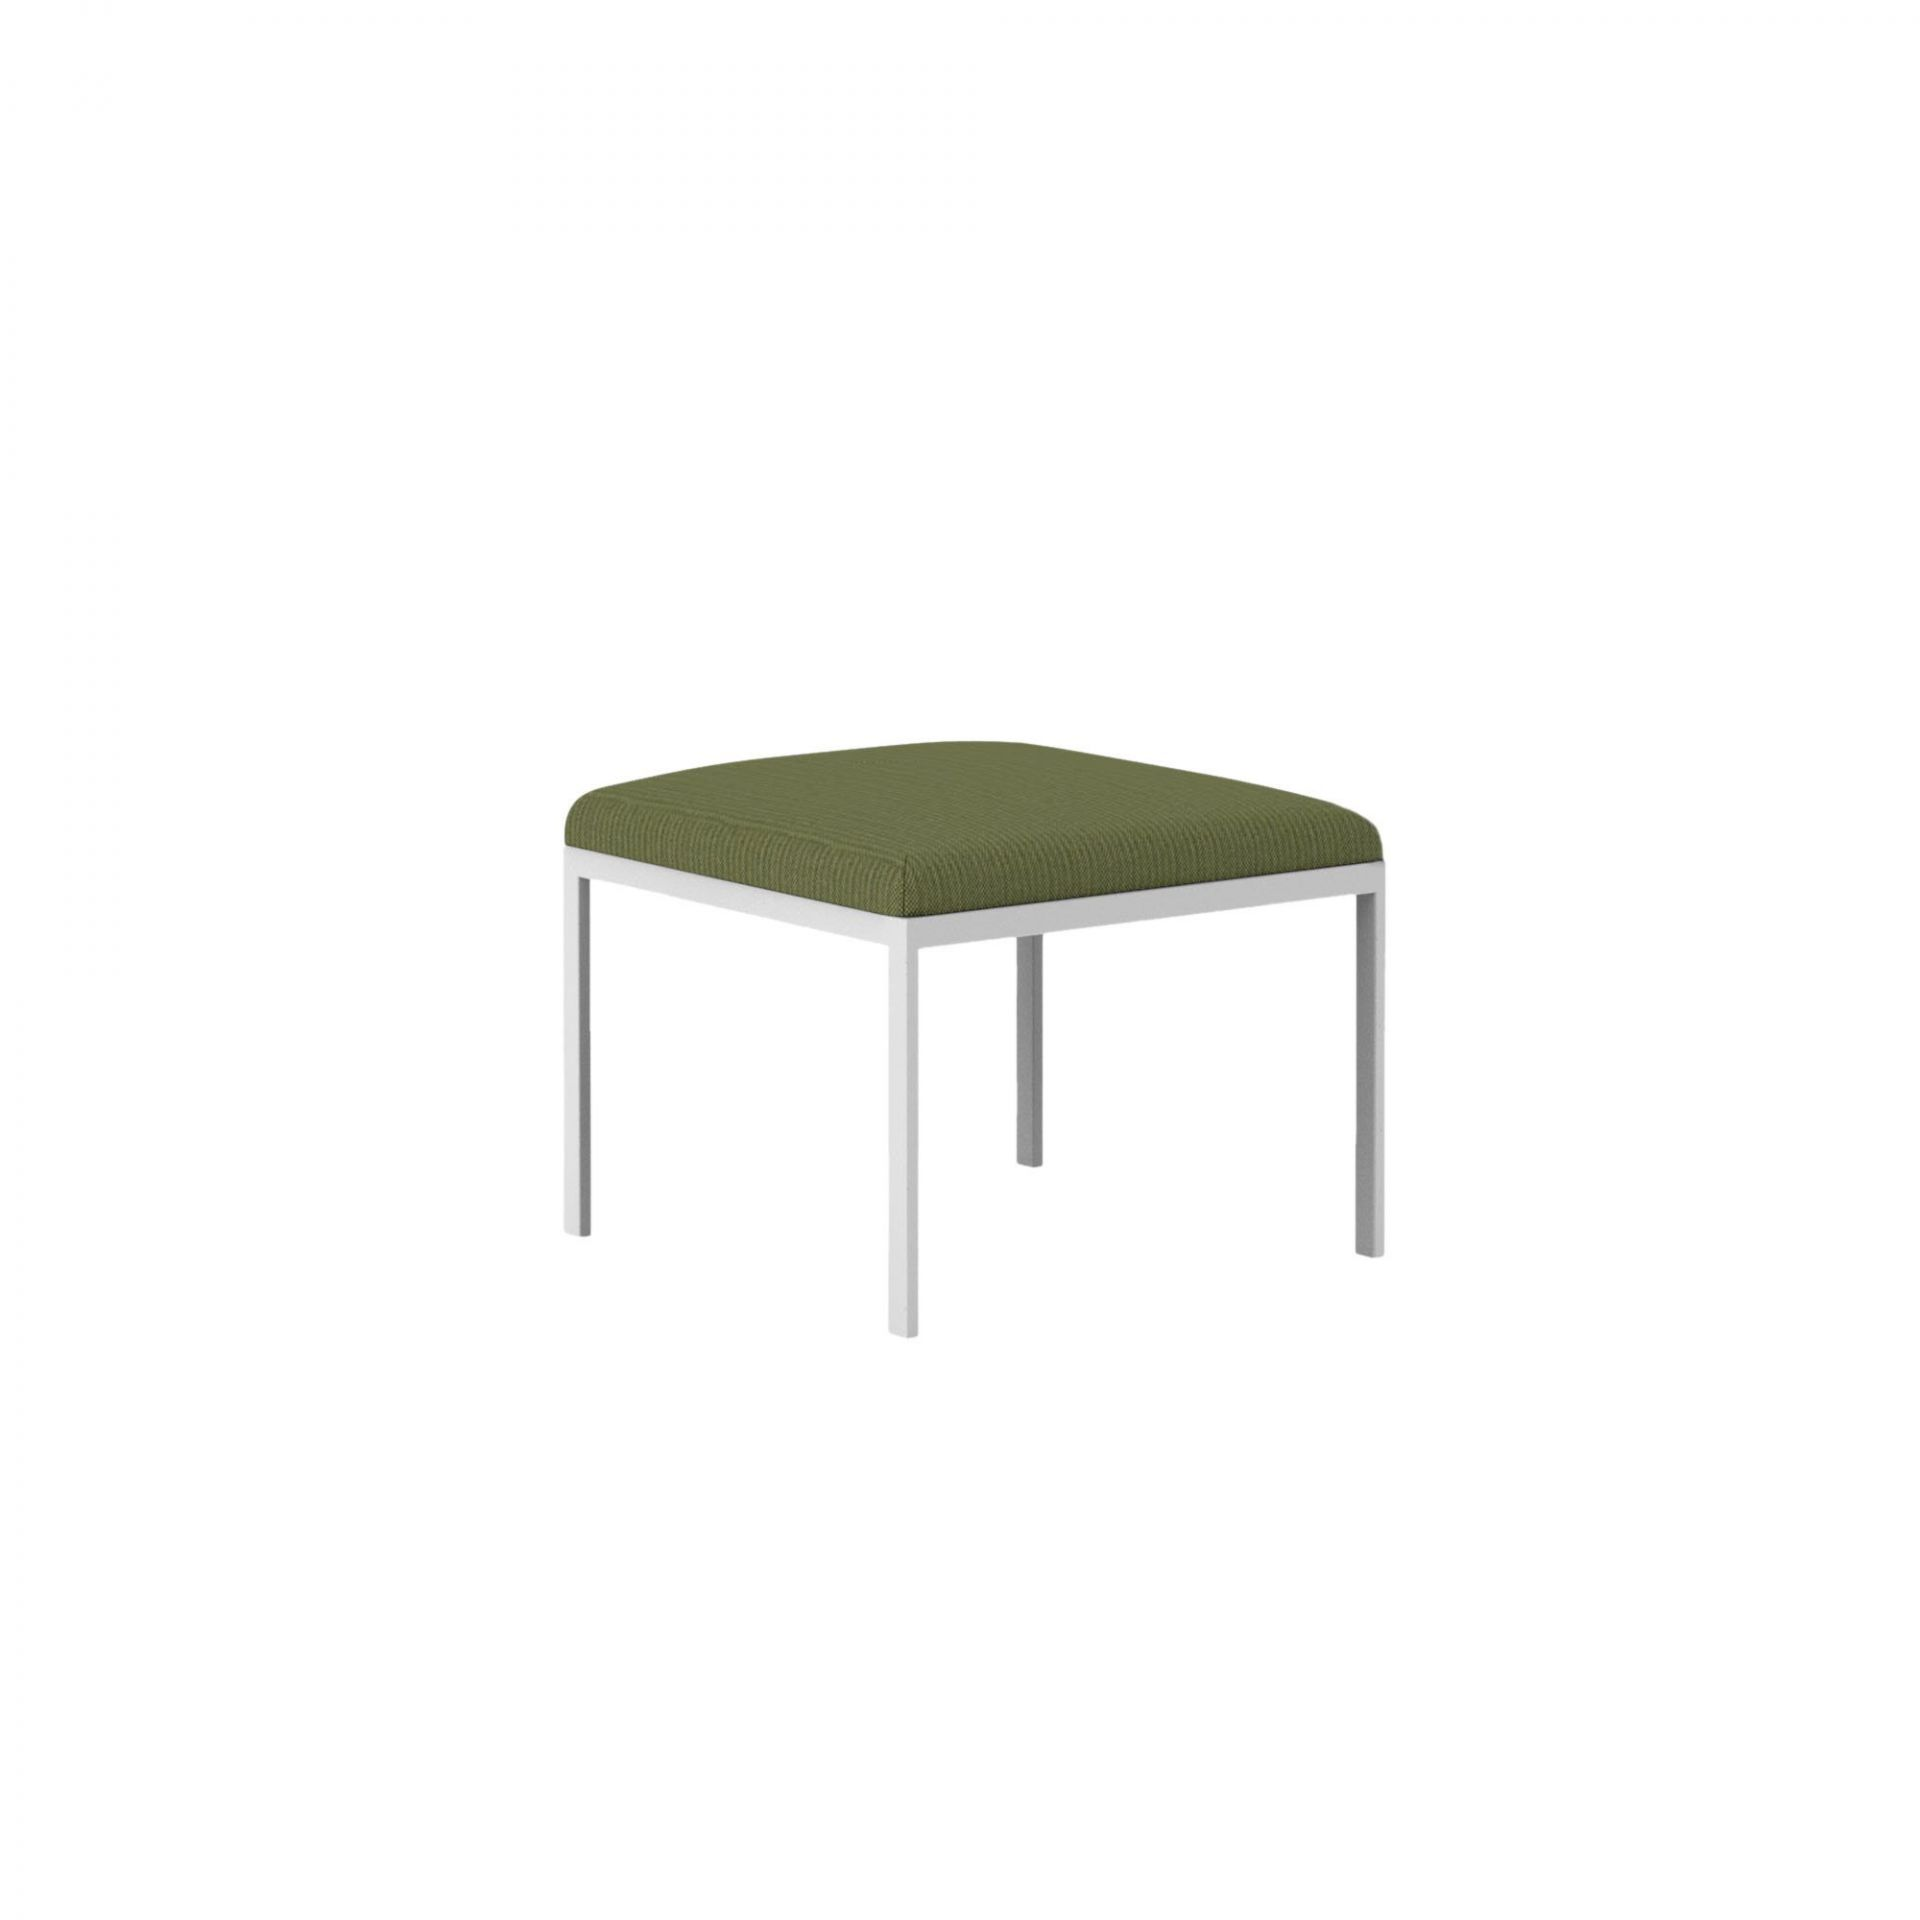 Create Seating Bench product image 3